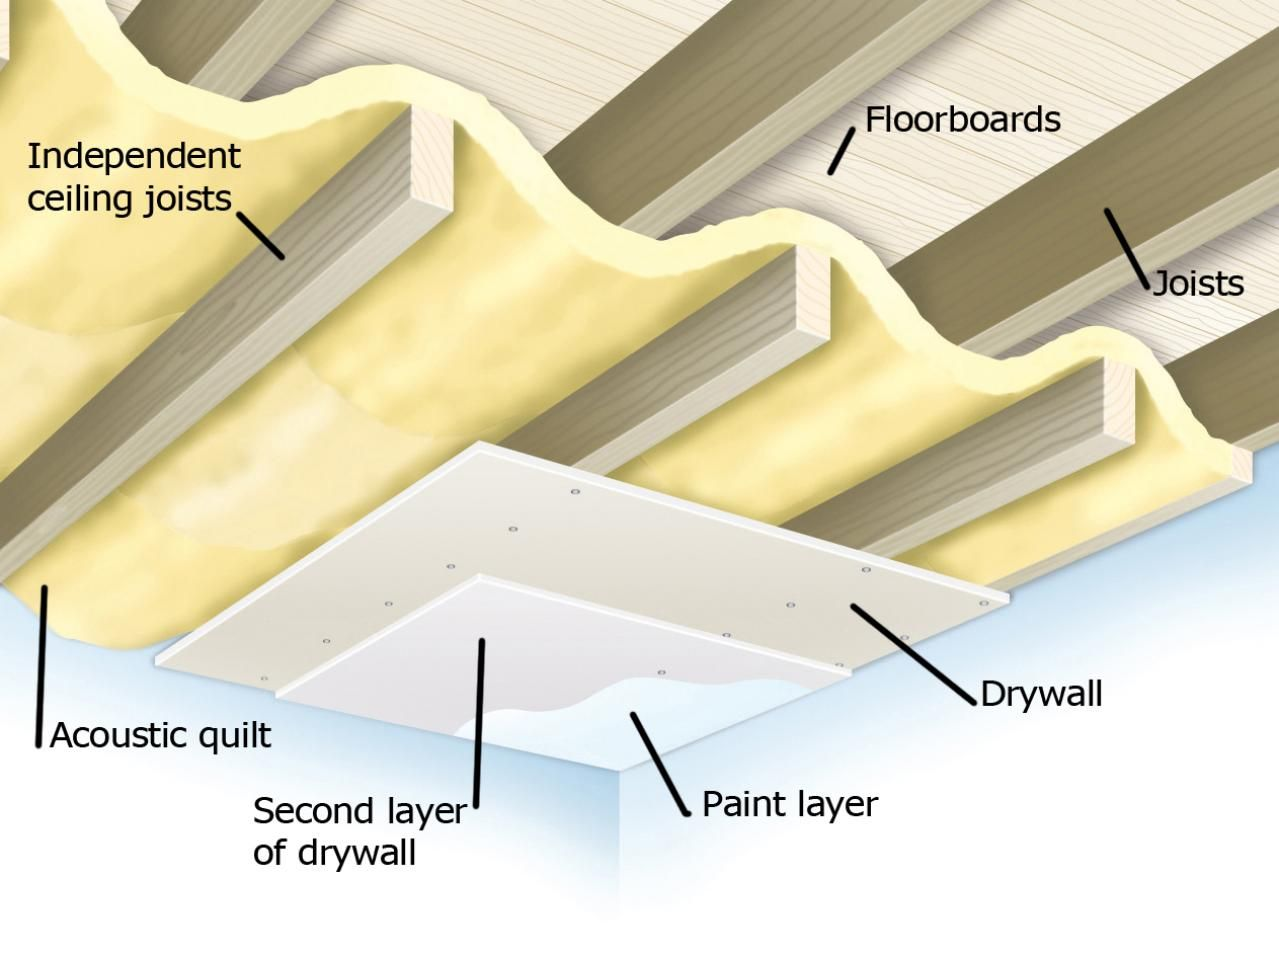 Soundproofing a Ceiling | Ceilings, Basements and Spaces